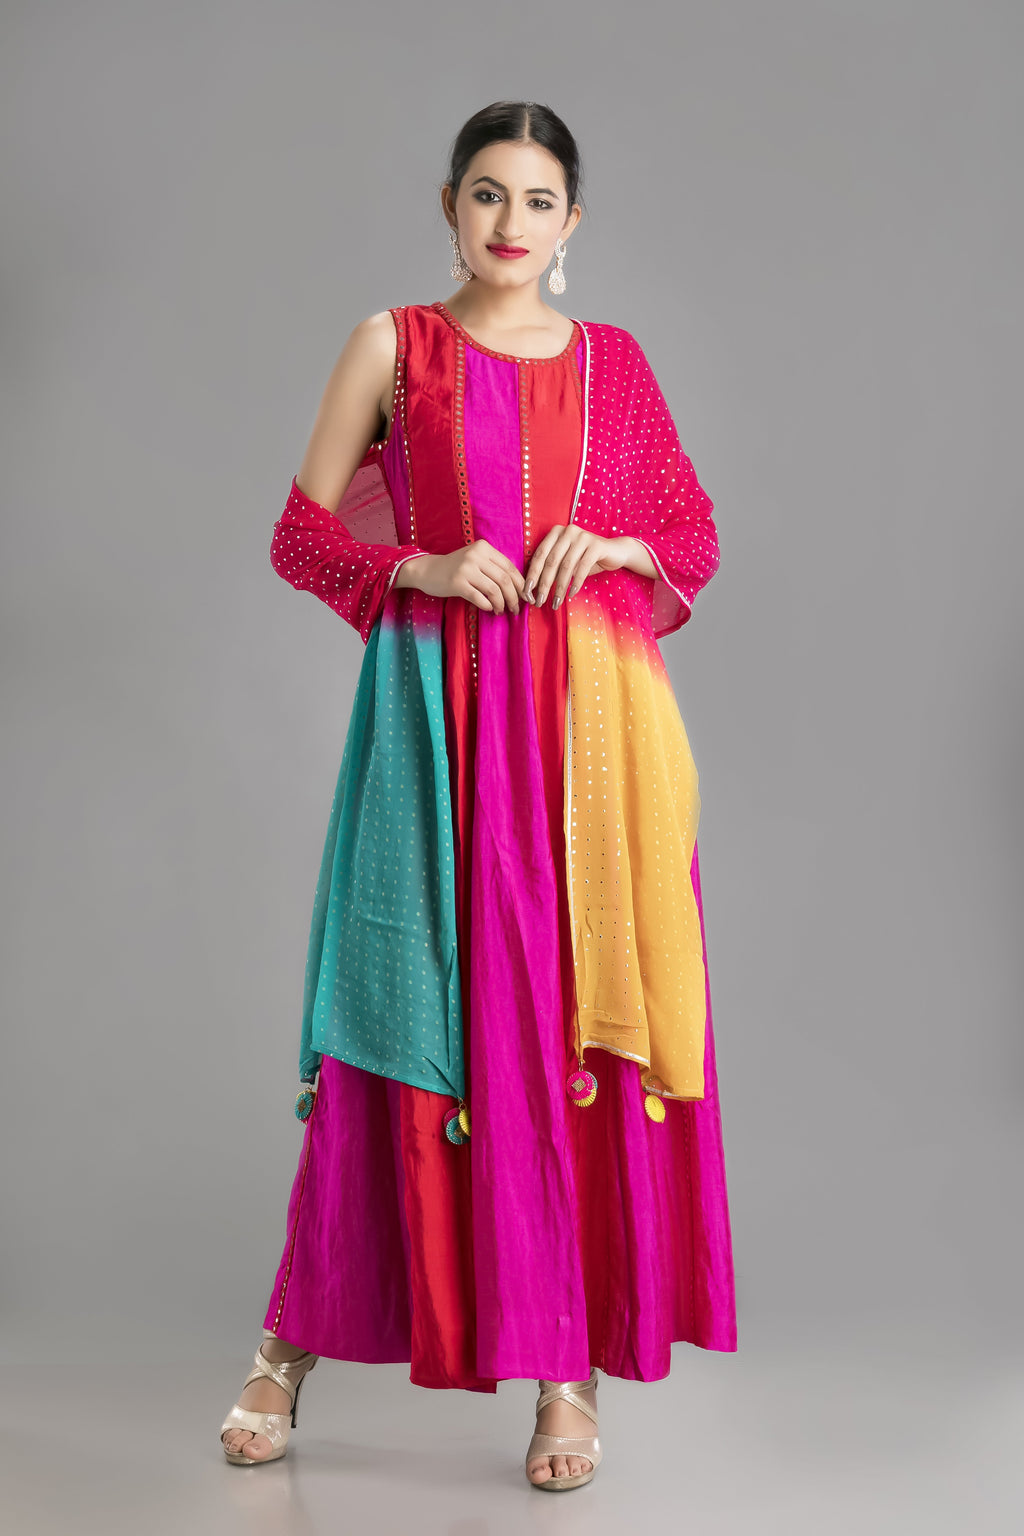 The Gypsy -A Stunning Dress in the Colours of Life